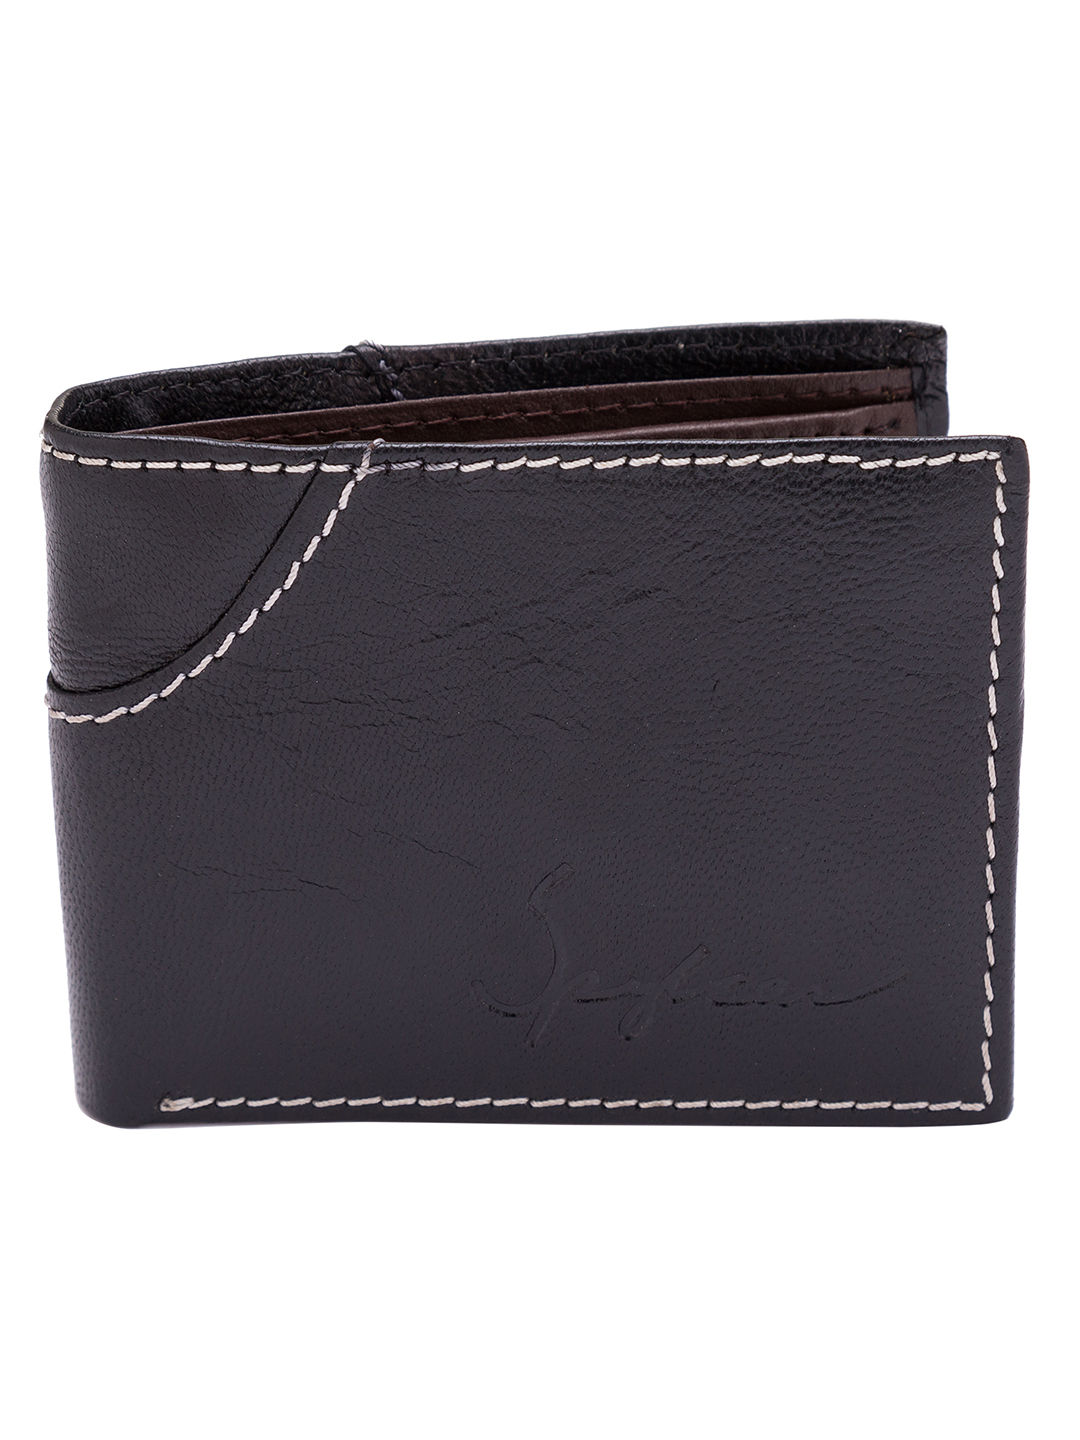 Spykar Leather Black Wallets